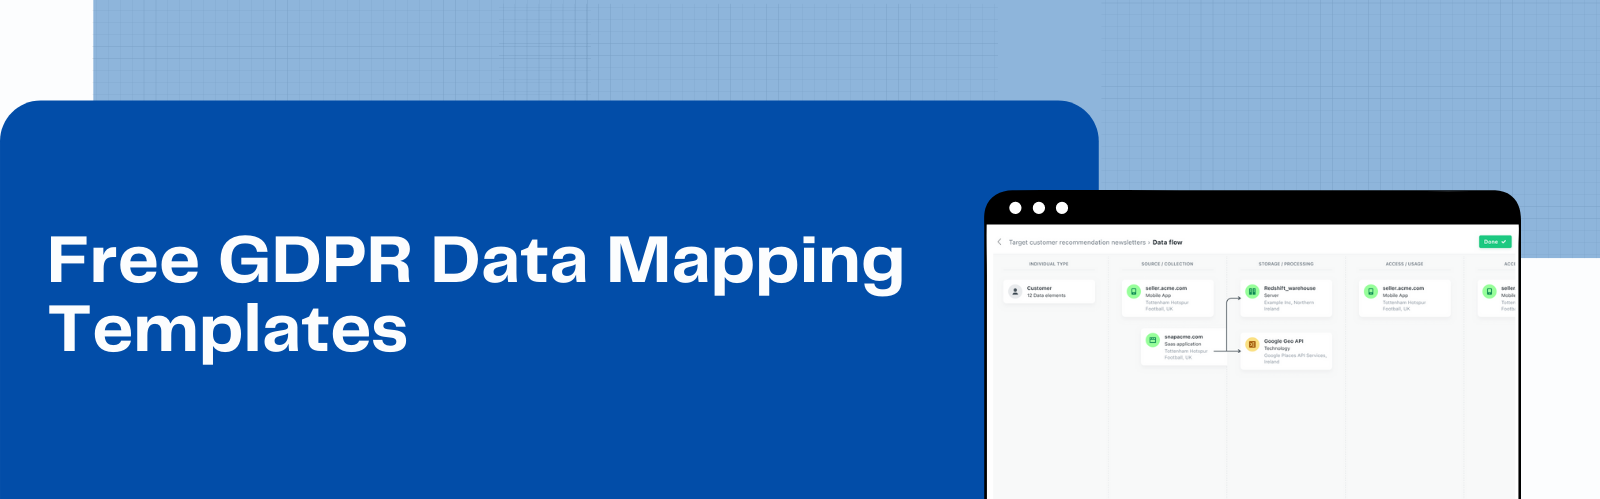 GDPR-data-mapping-template